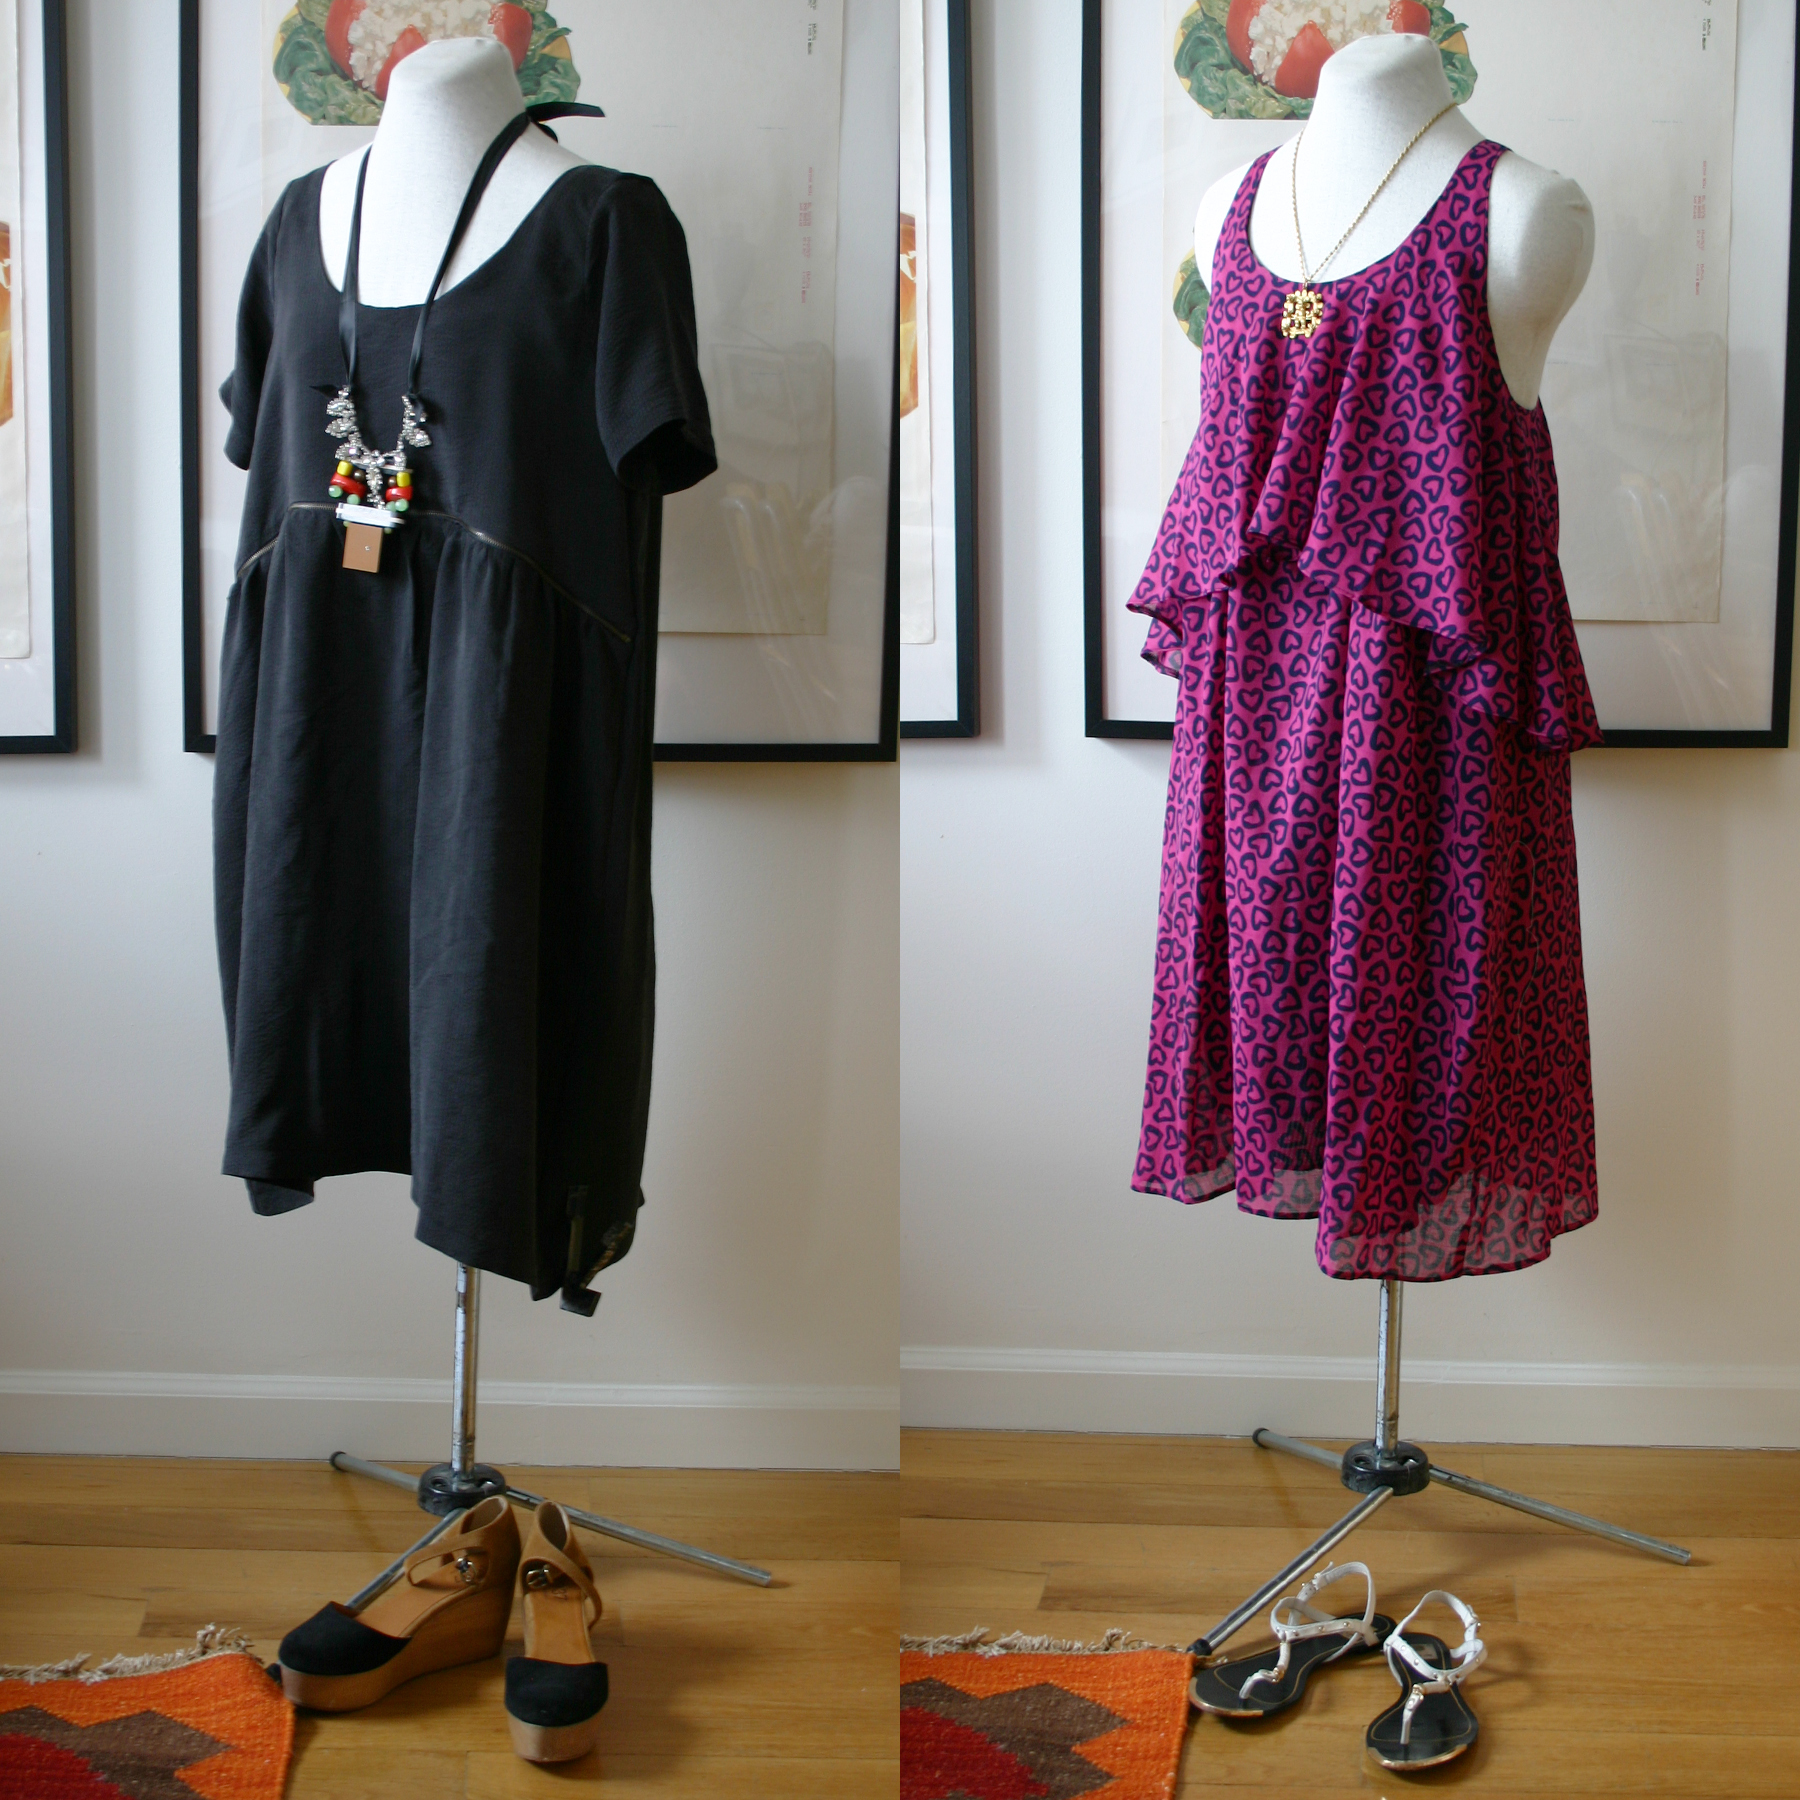 The dress access -  The Down Under These Two Are My Own Designs And Both Utilize The Under Breast Access Found In Many Nursing Tops And Dresses For The Dress On The Left